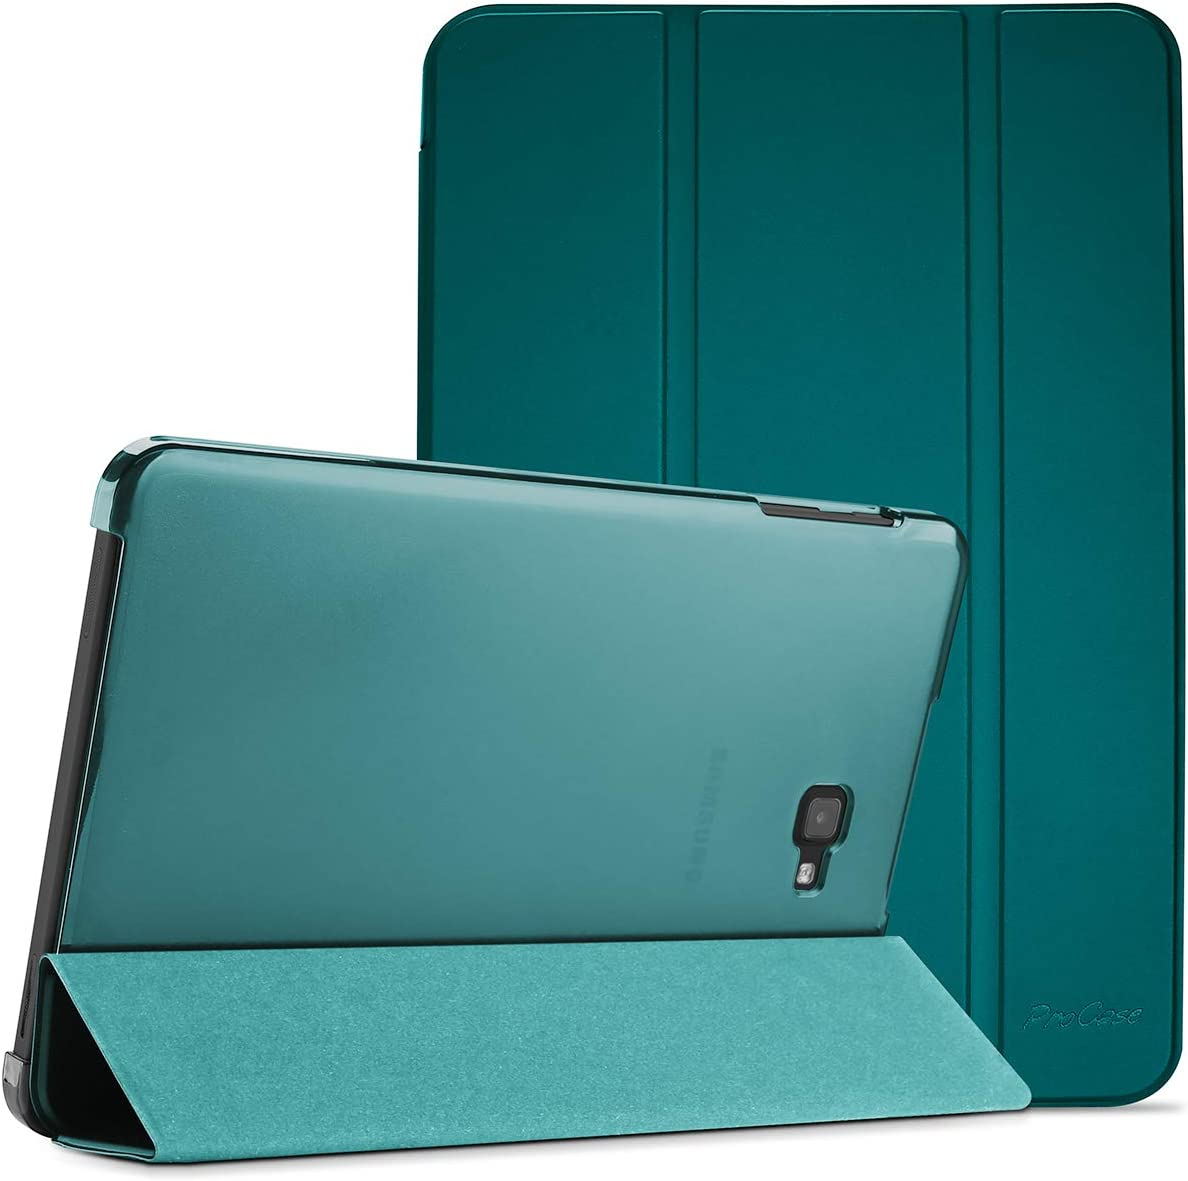 ProCase Old Model Galaxy Tab A 10.1 Case SM-T580 T585 T587, Slim Lightweight Stand Shell Smart Cover for Old 10.1 Inch Galaxy Tab A Tablet 2016 Model -Emerald